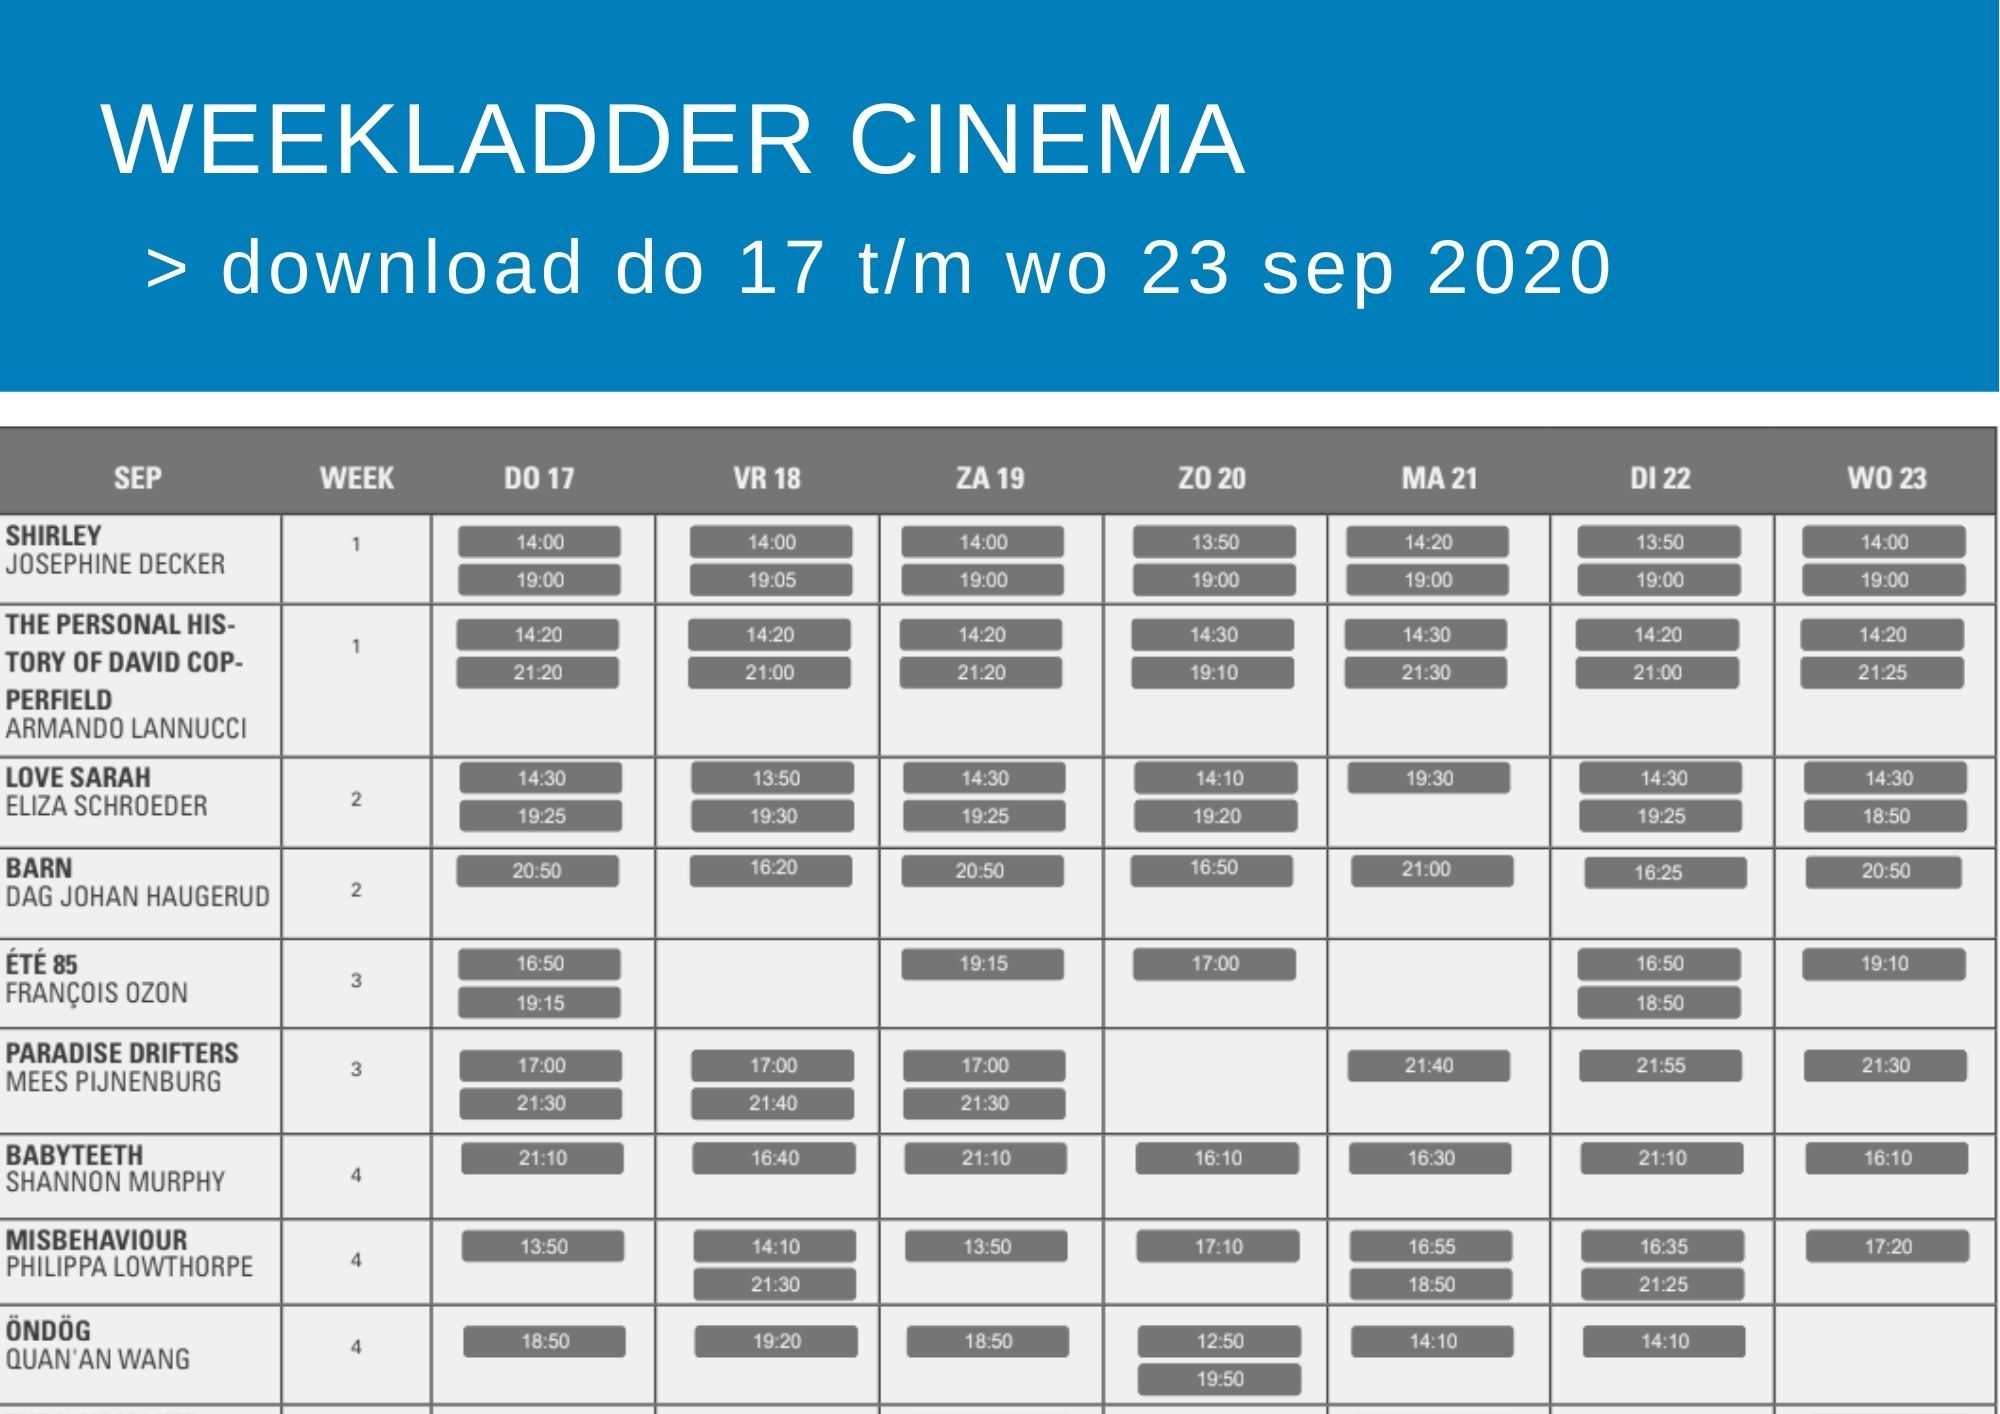 Cinema weekfolder